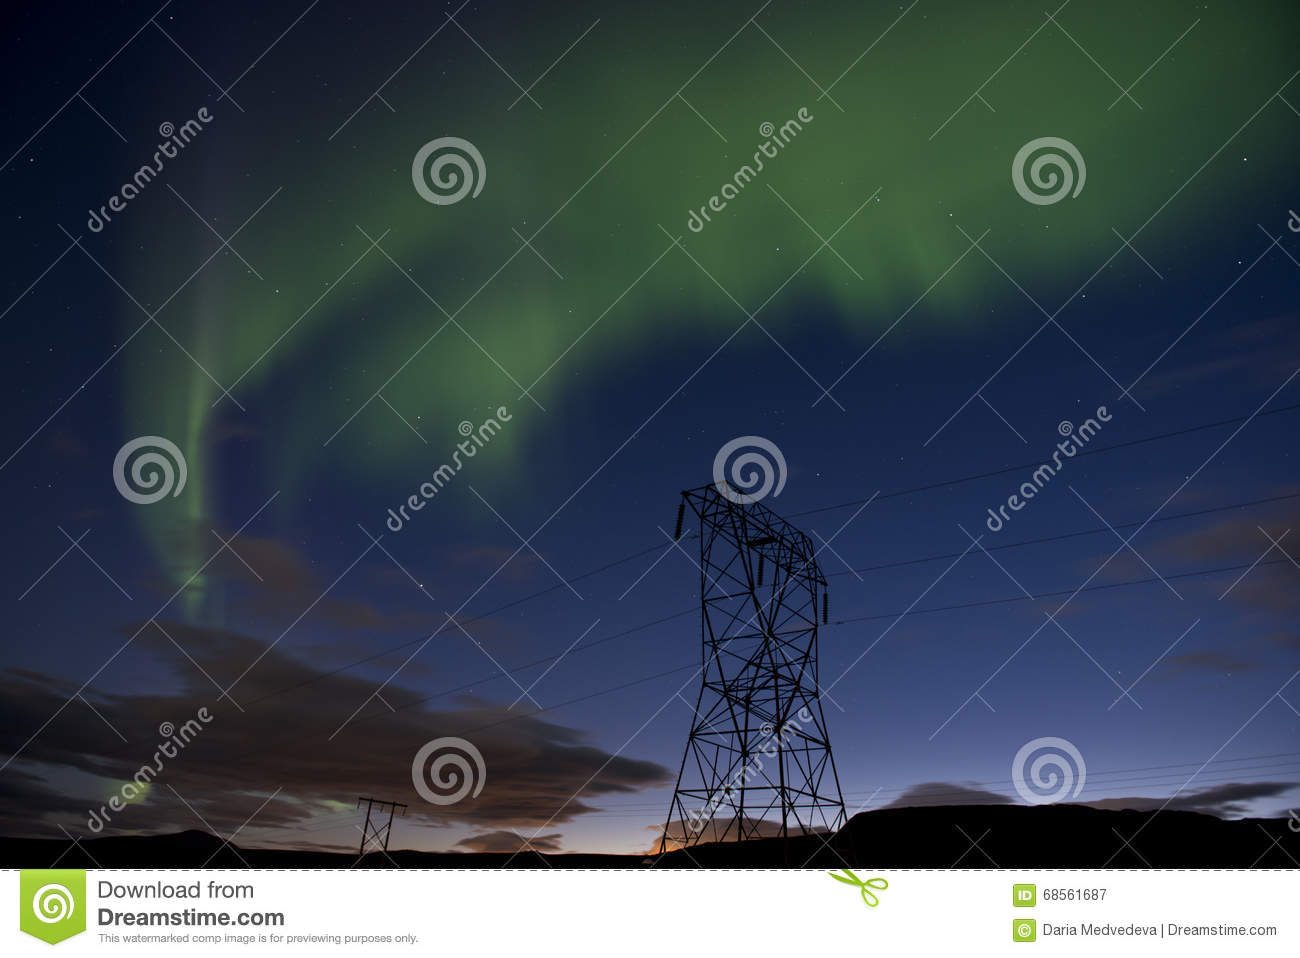 Green Northern lights on a blue night sky with stars, Aurora borealis in Iceland